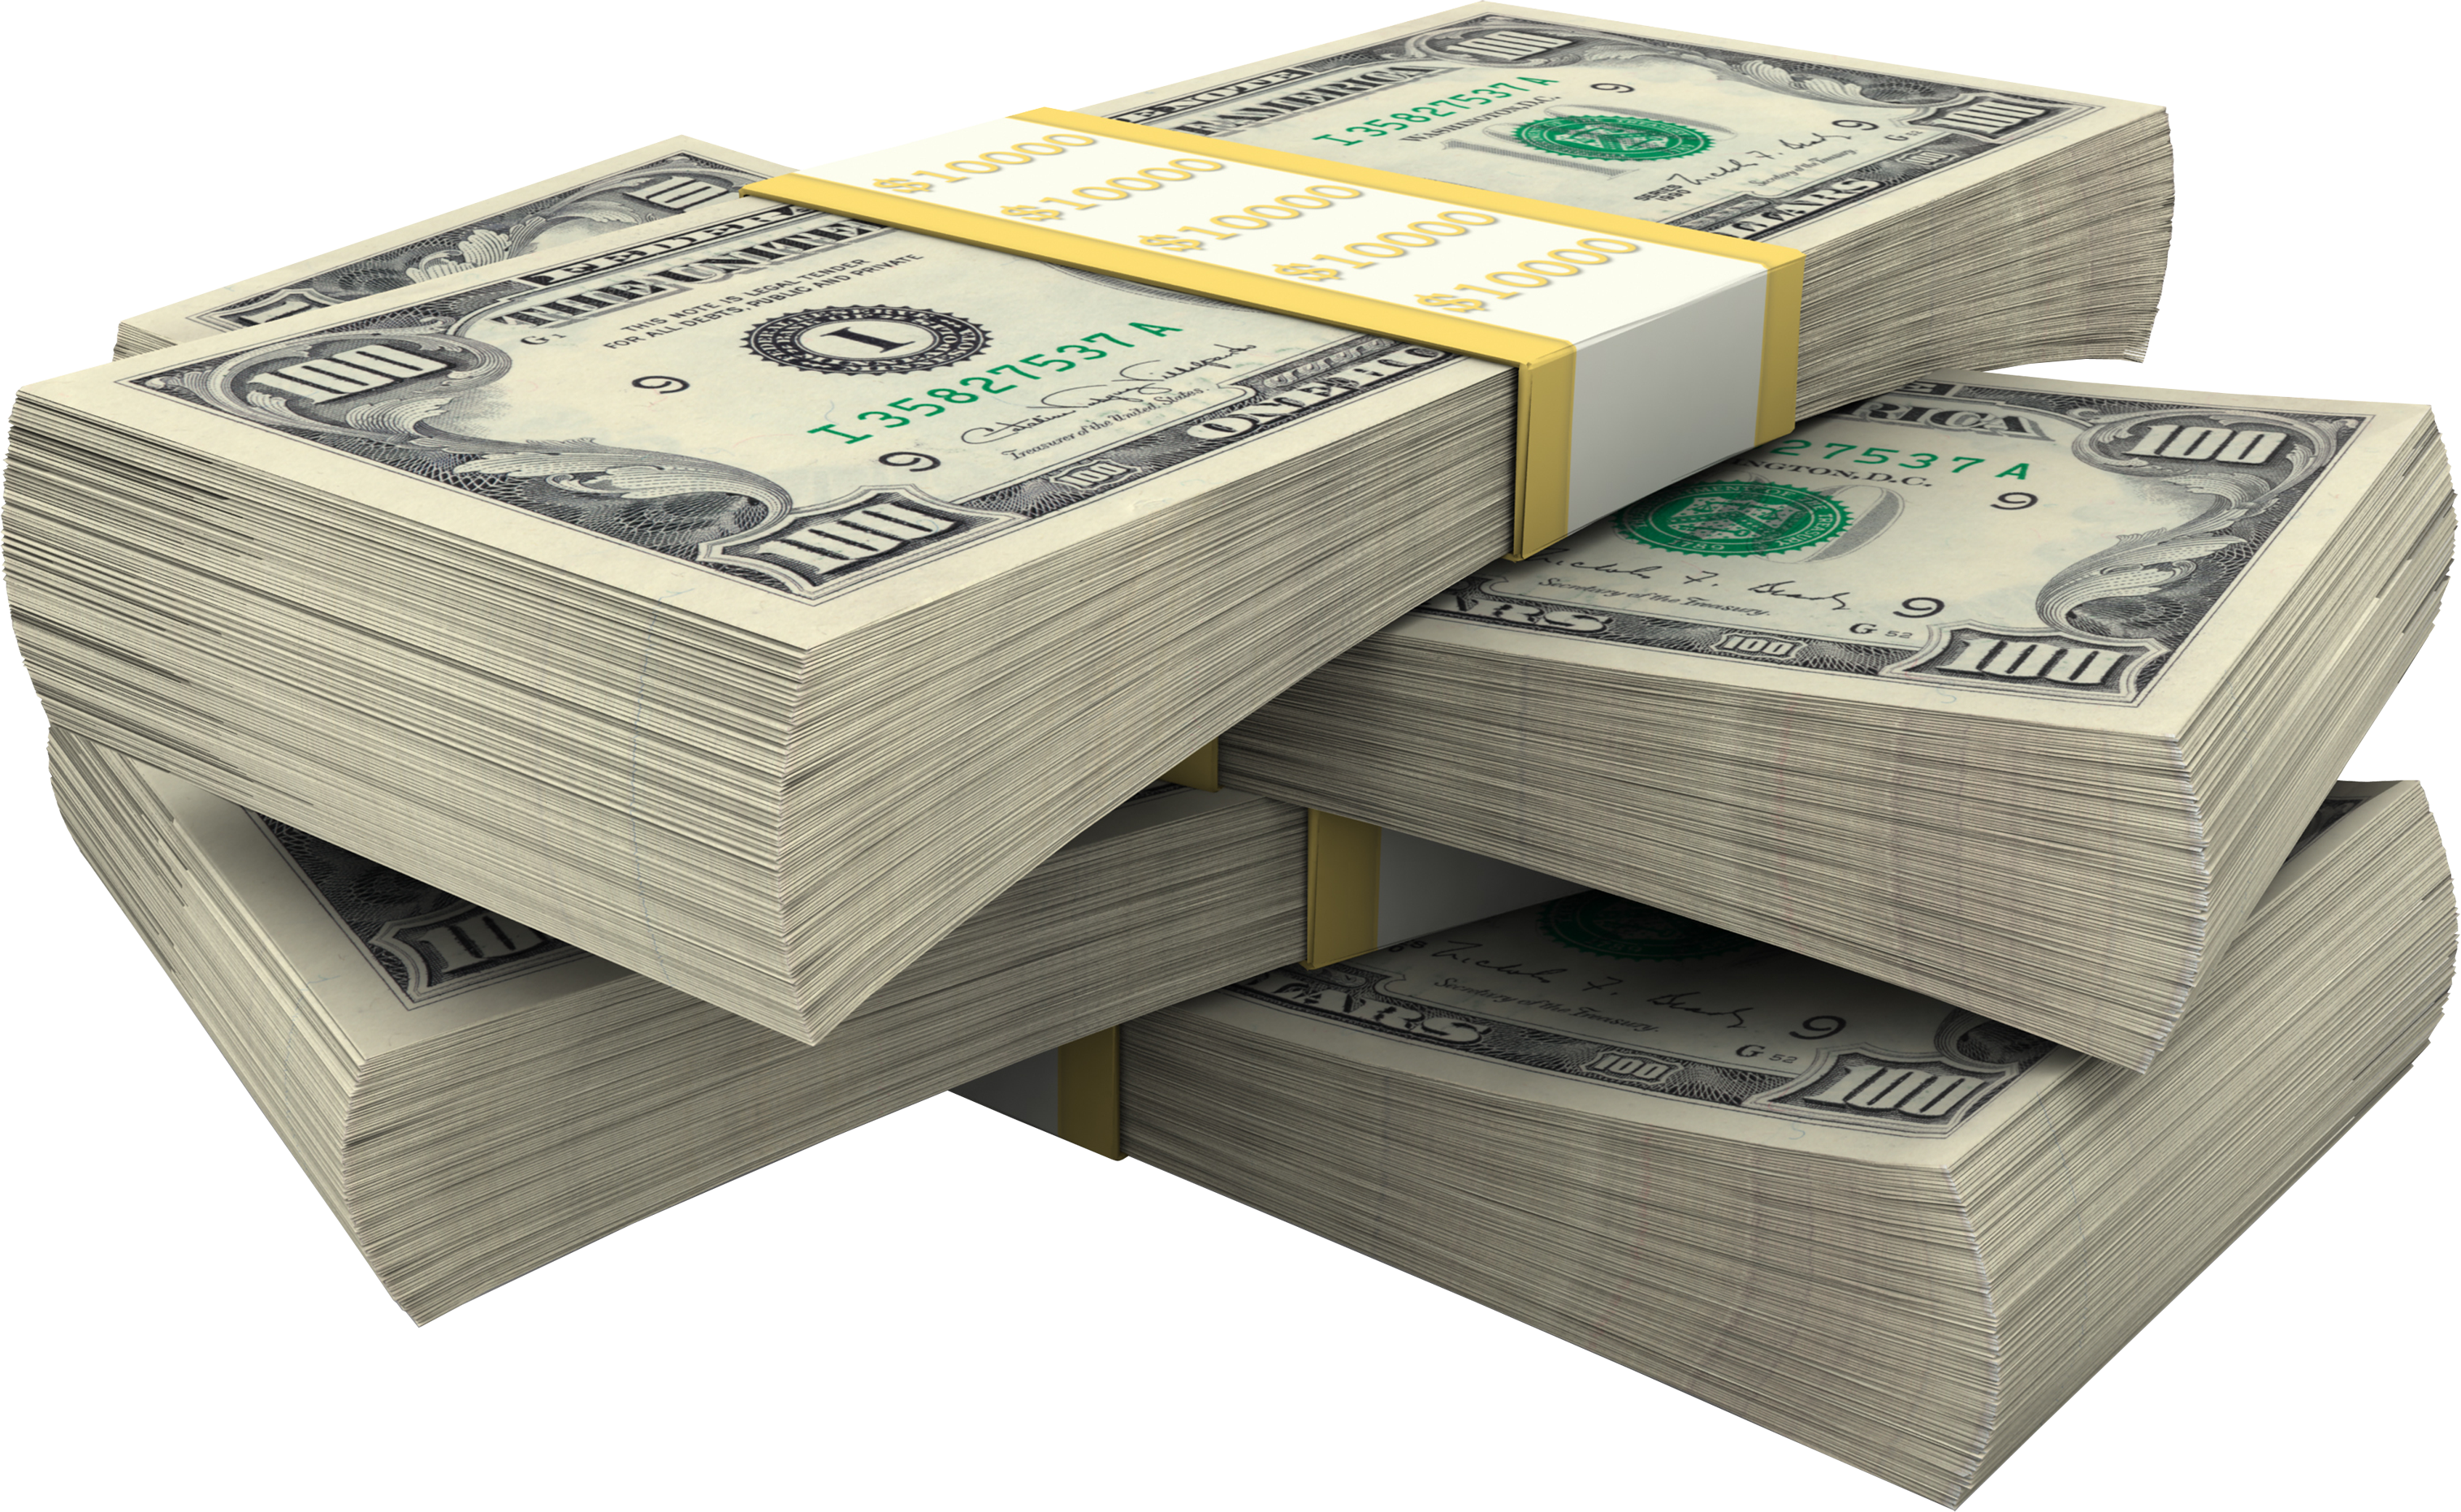 Money Png Image Free Money Pictures Download Money Pictures Online Surveys That Pay Saving For Retirement